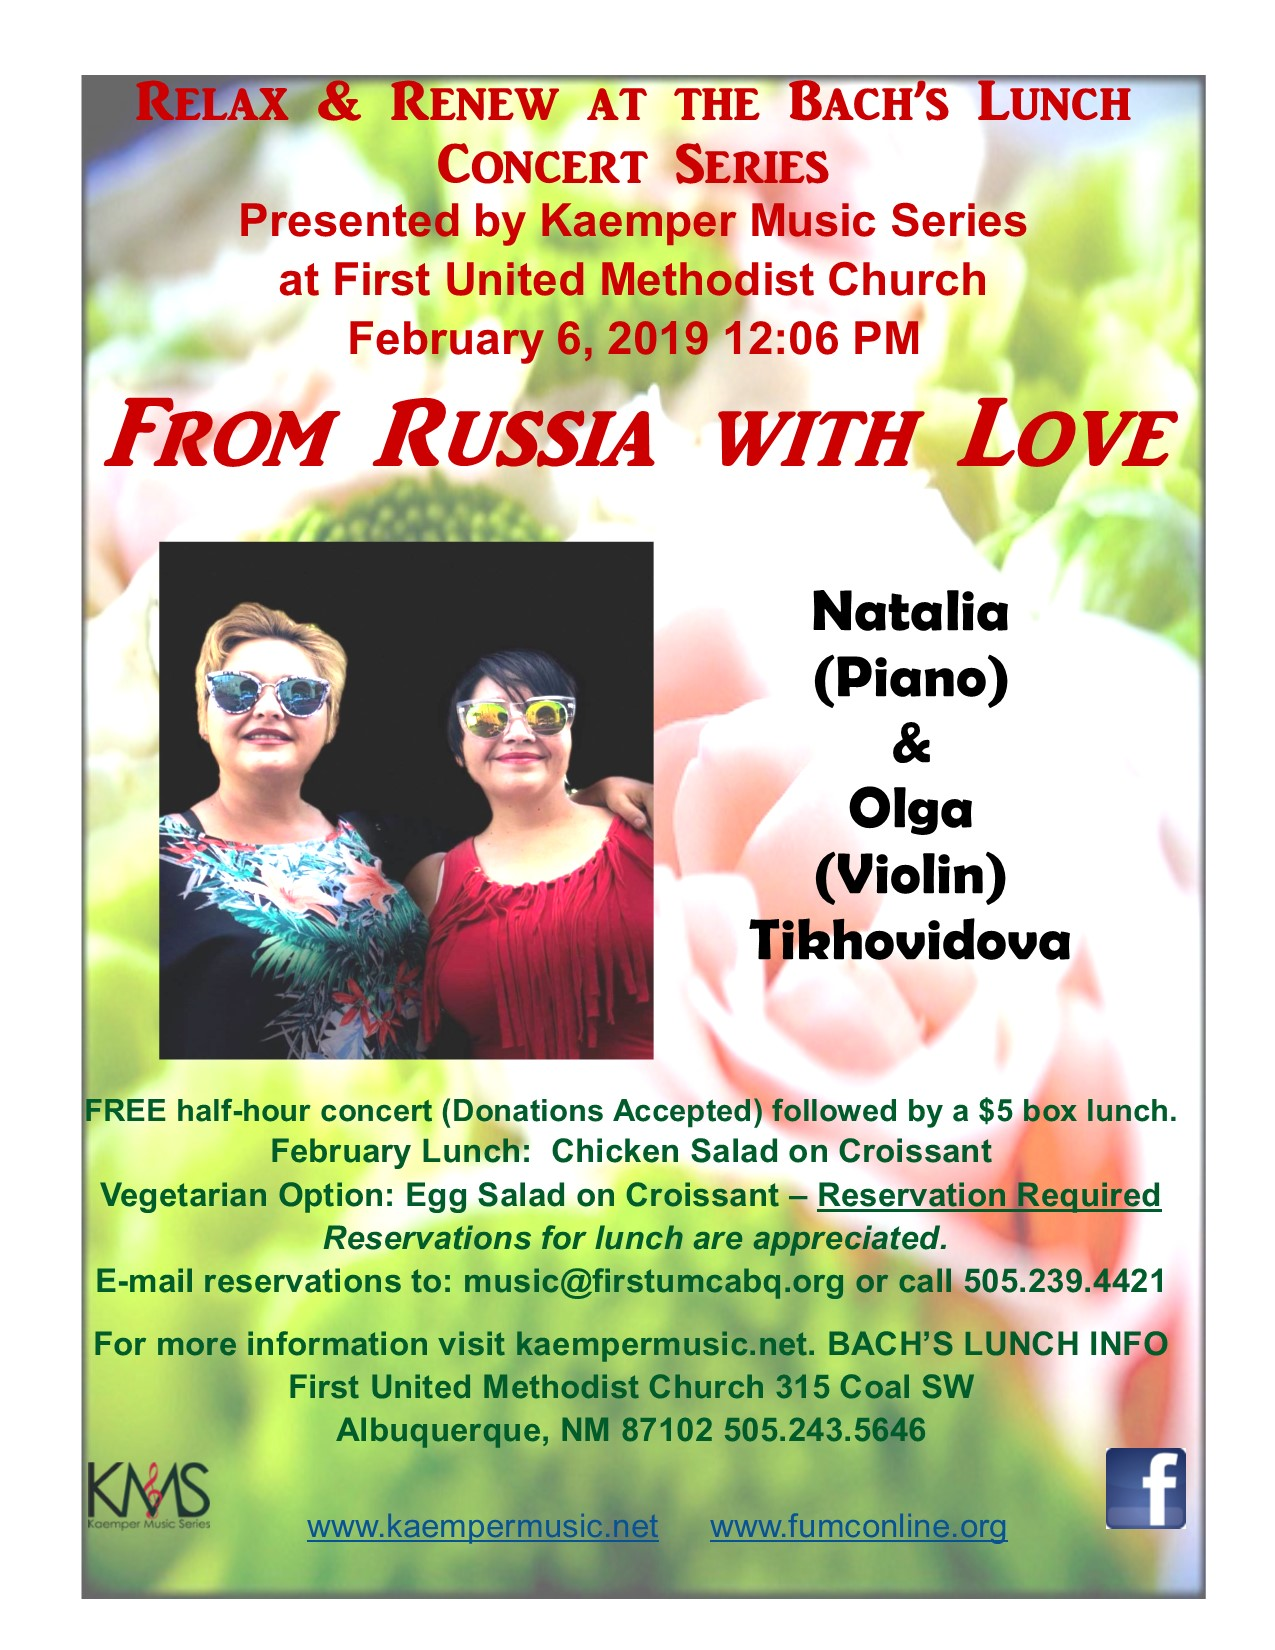 From Russia with Love – Piano & Violin Concert